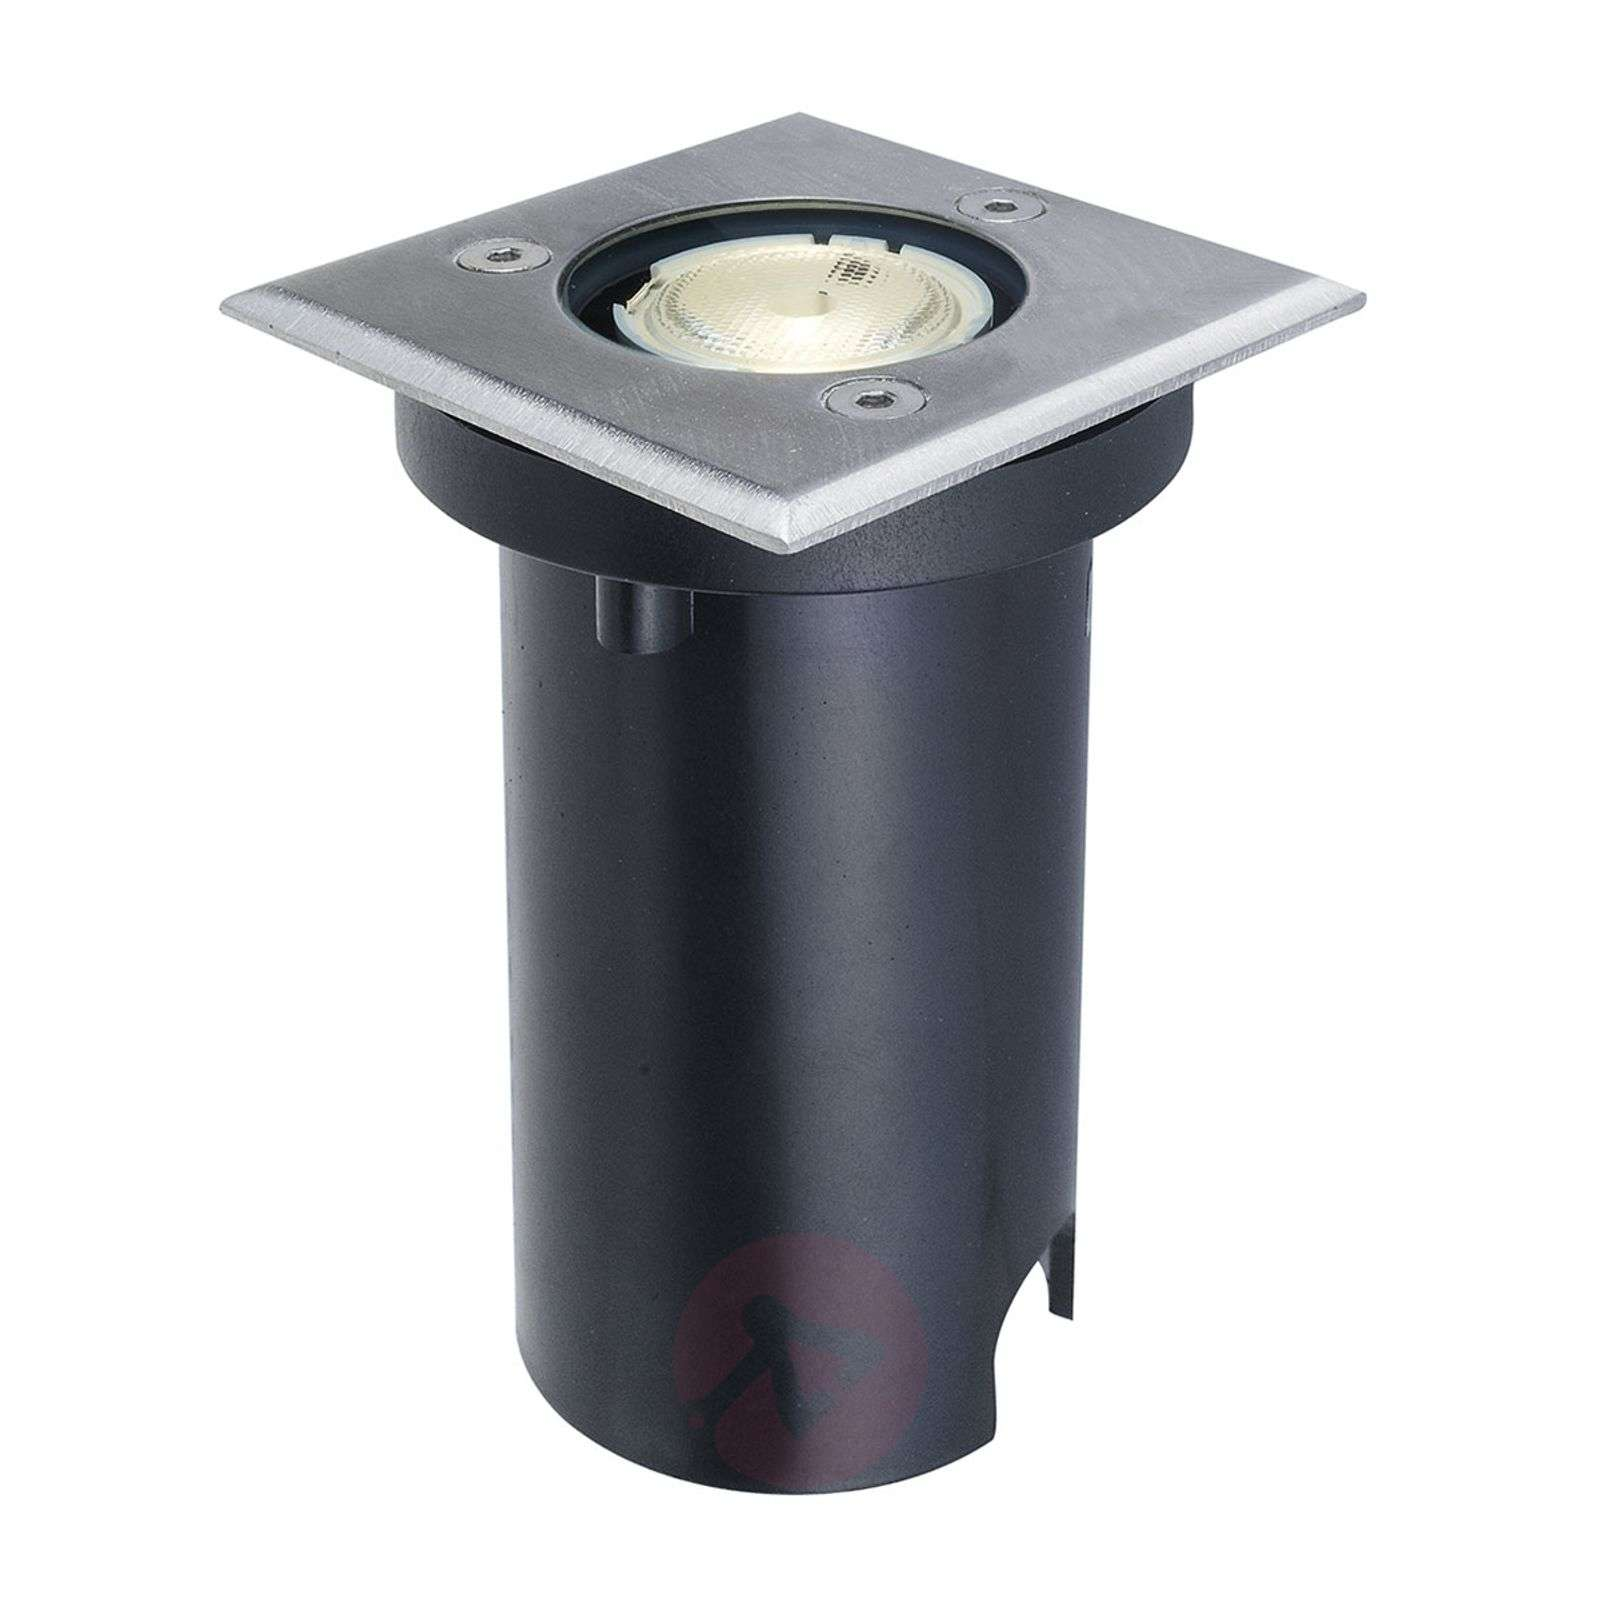 Foco LED empotrable en suelo Kenan IP65 49 lm-9616036-01